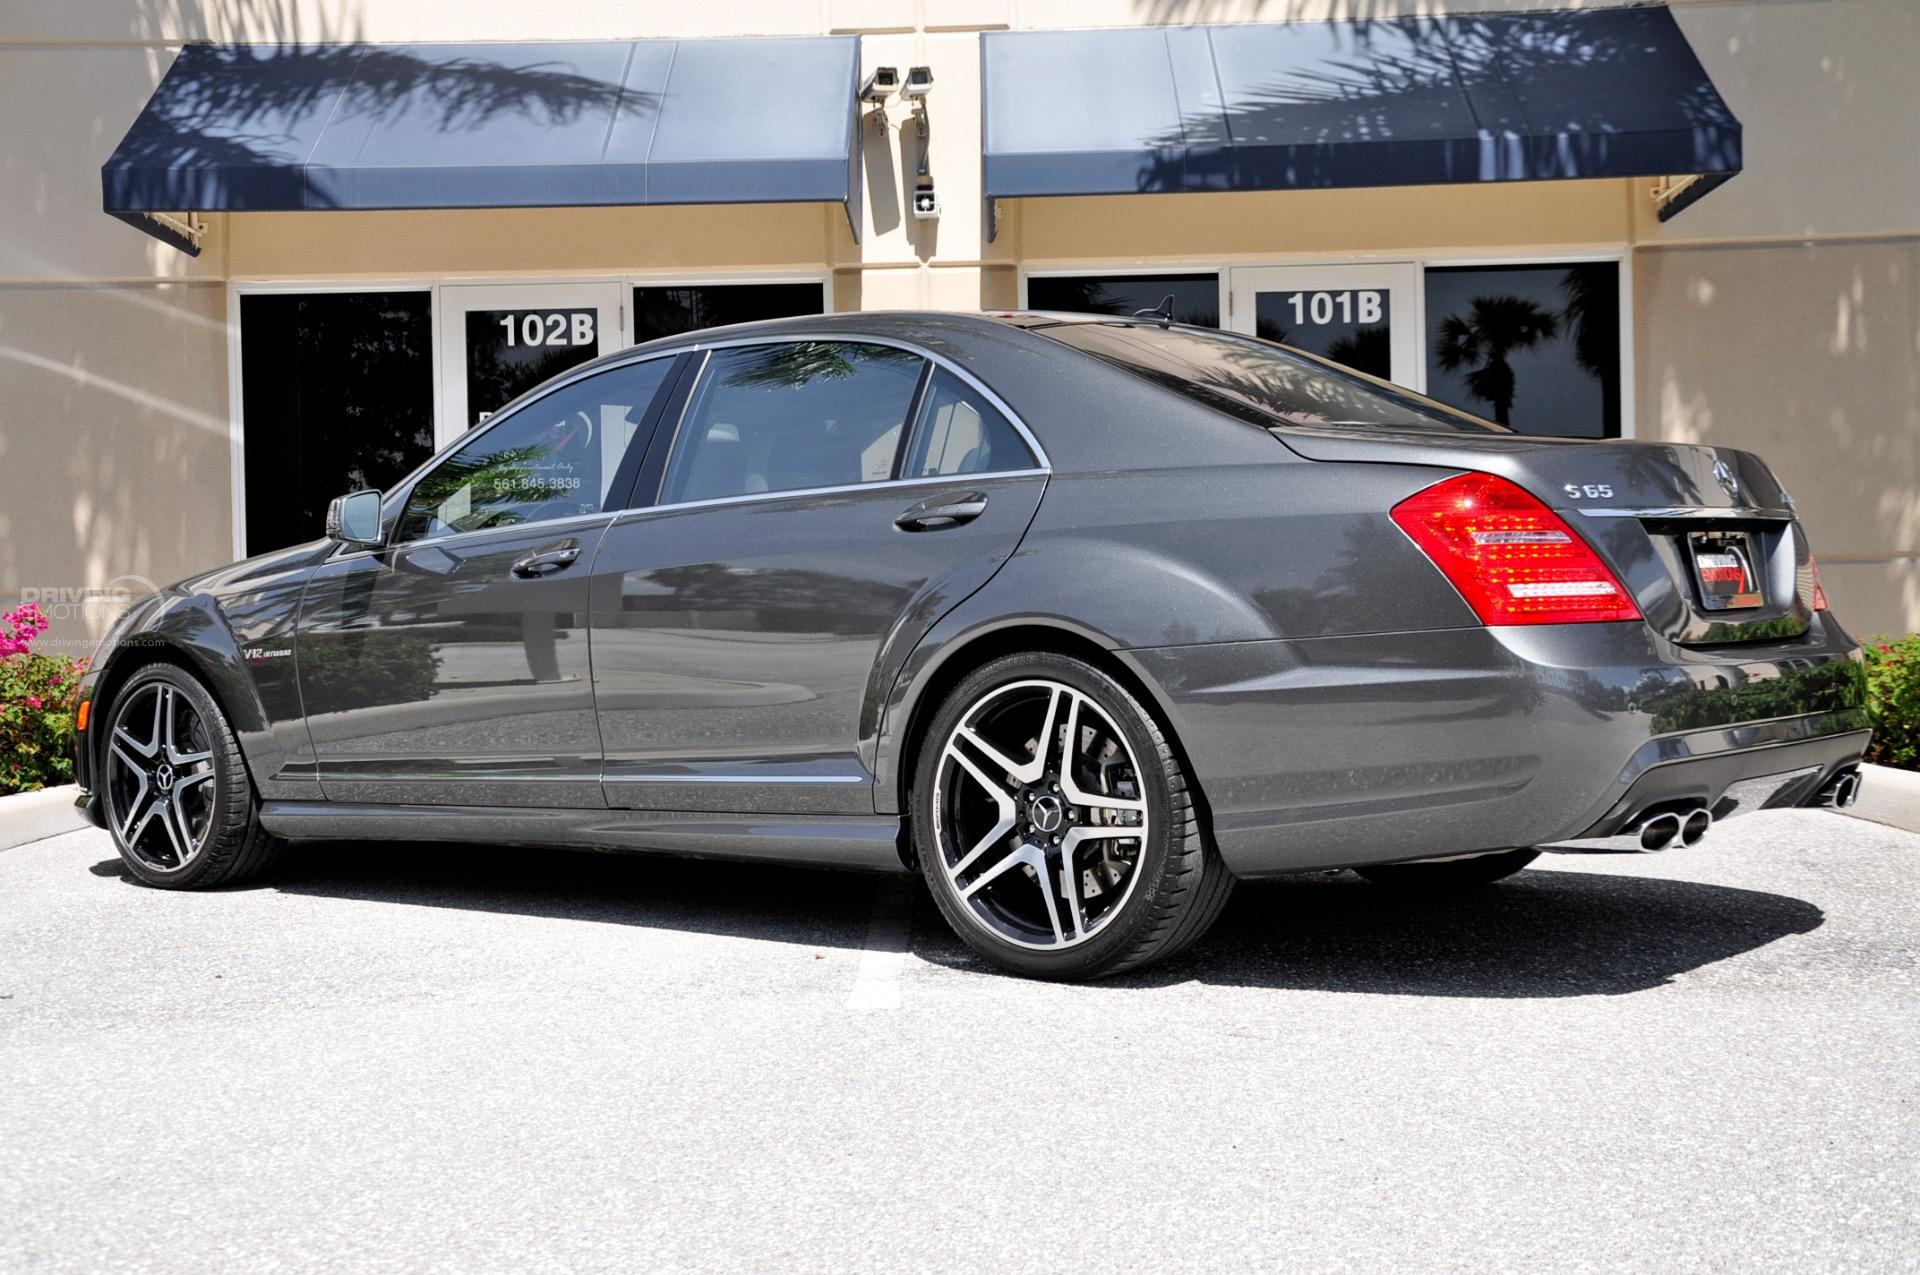 2012 Mercedes Benz S65 Amg 65 Amg V12 Bi Turbo Stock 5685 For Sale